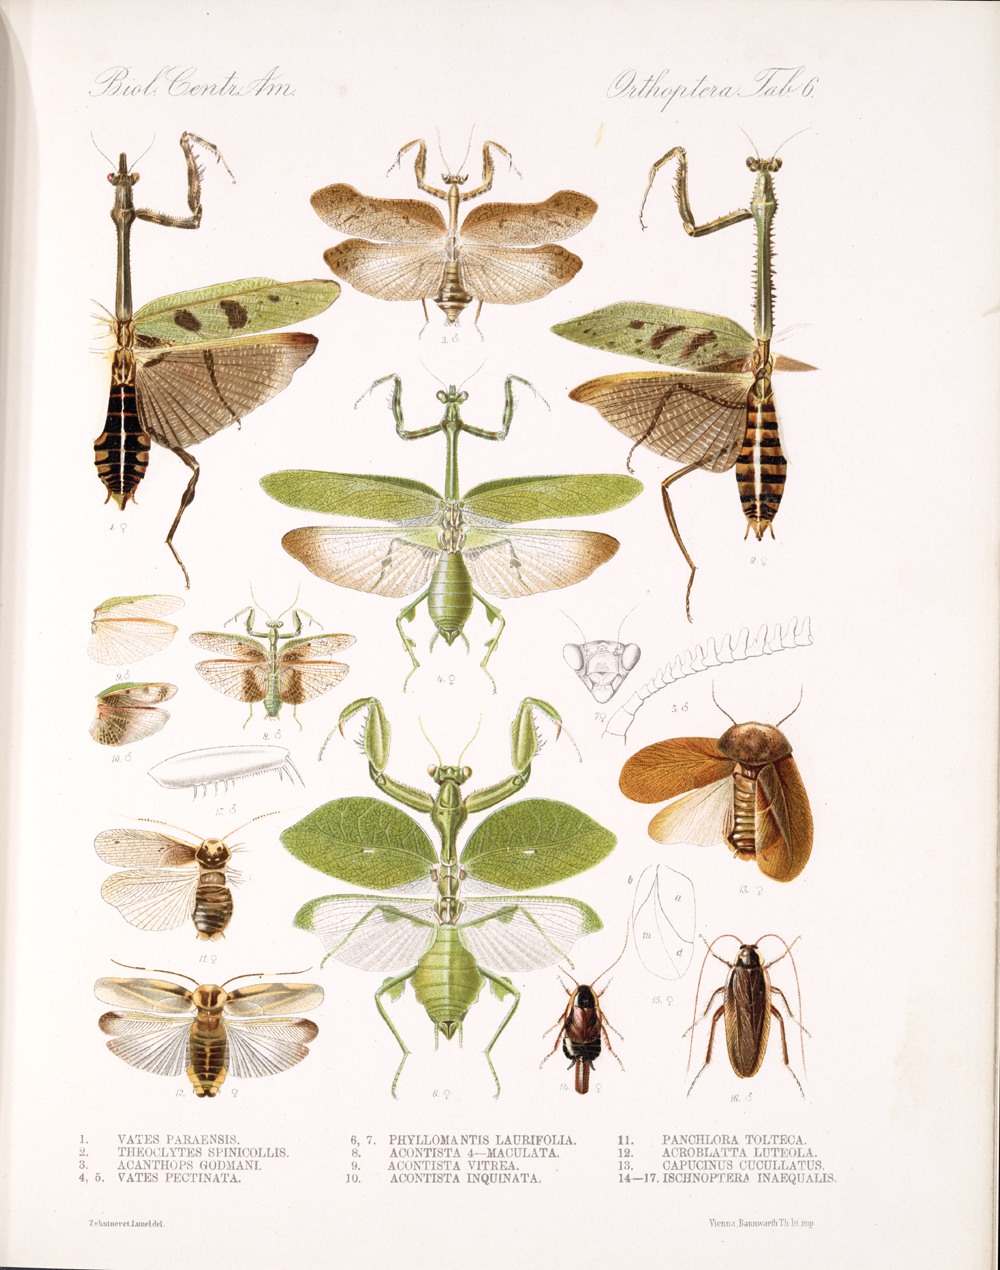 Grasshoppers and Related Insects,  Image number:bca_20_01_00_480